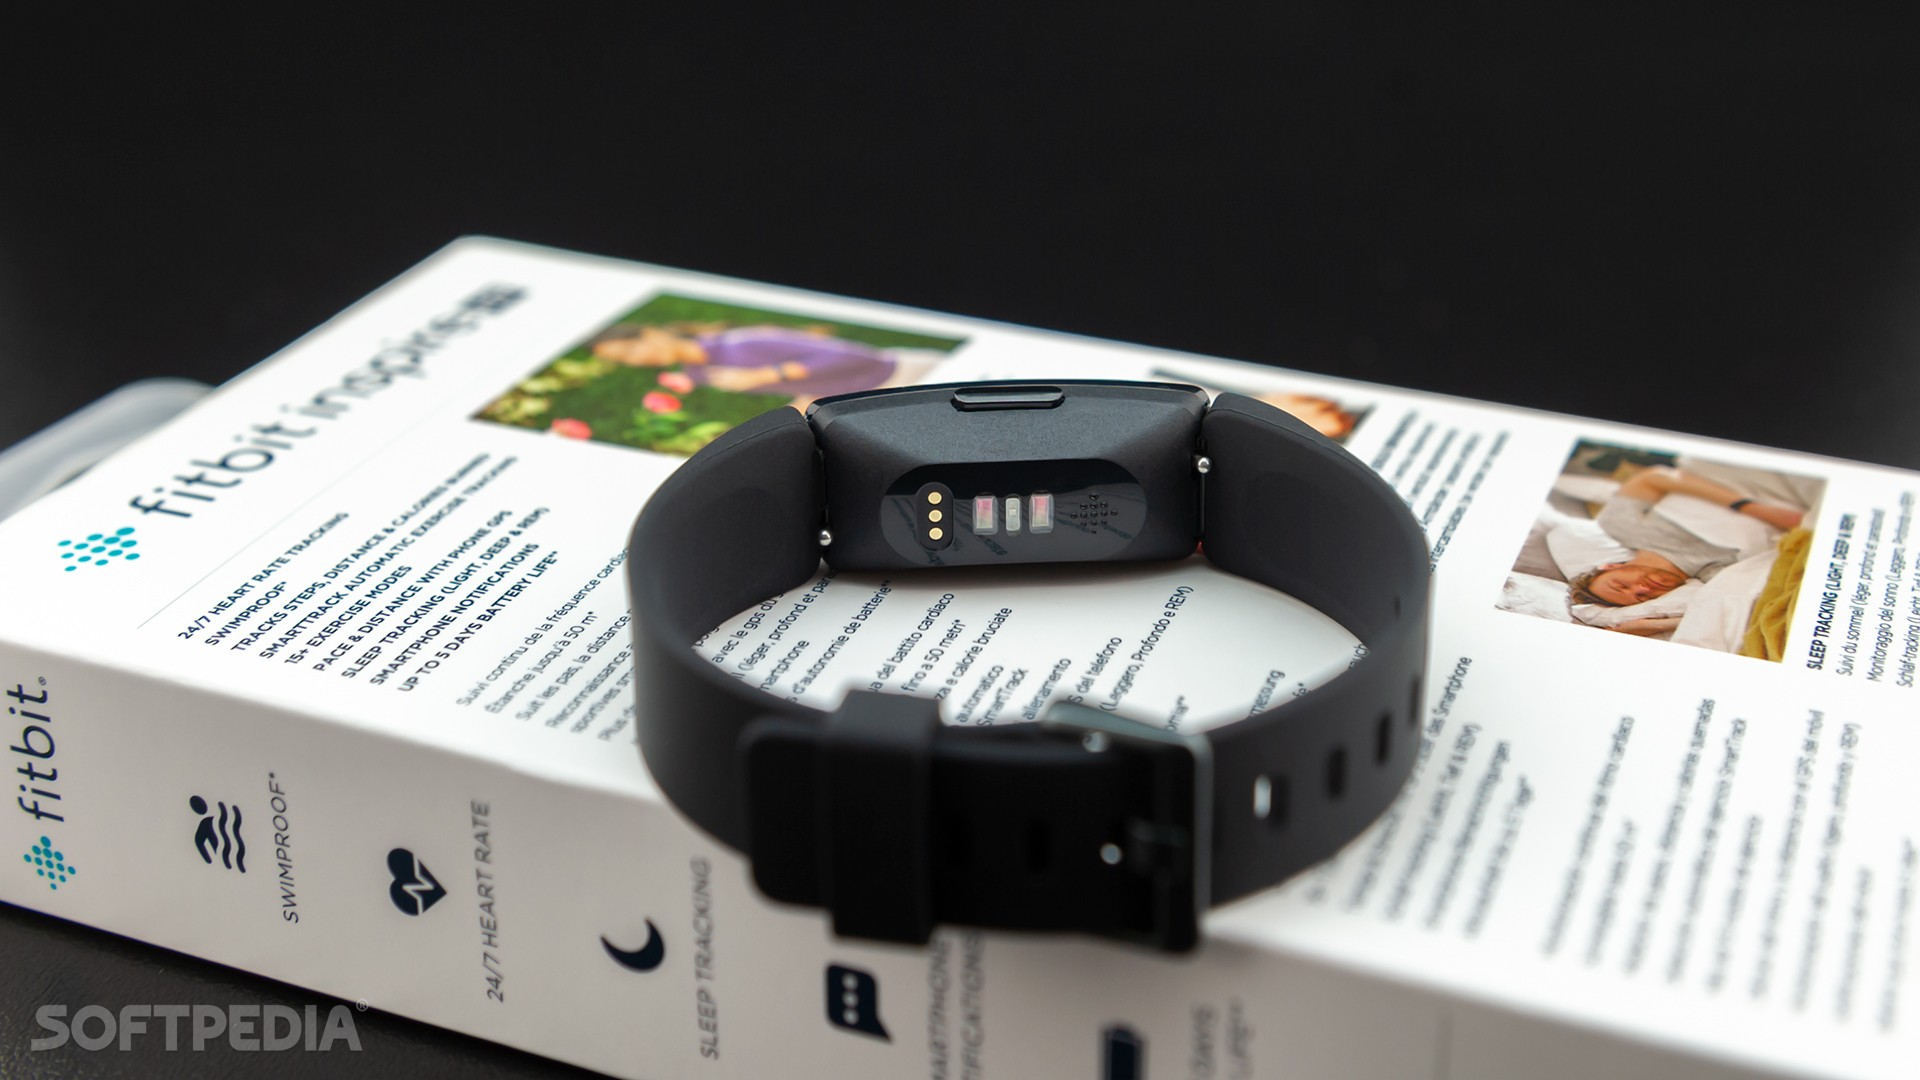 Fitbit Inspire Hr Review - Sleek and Useful